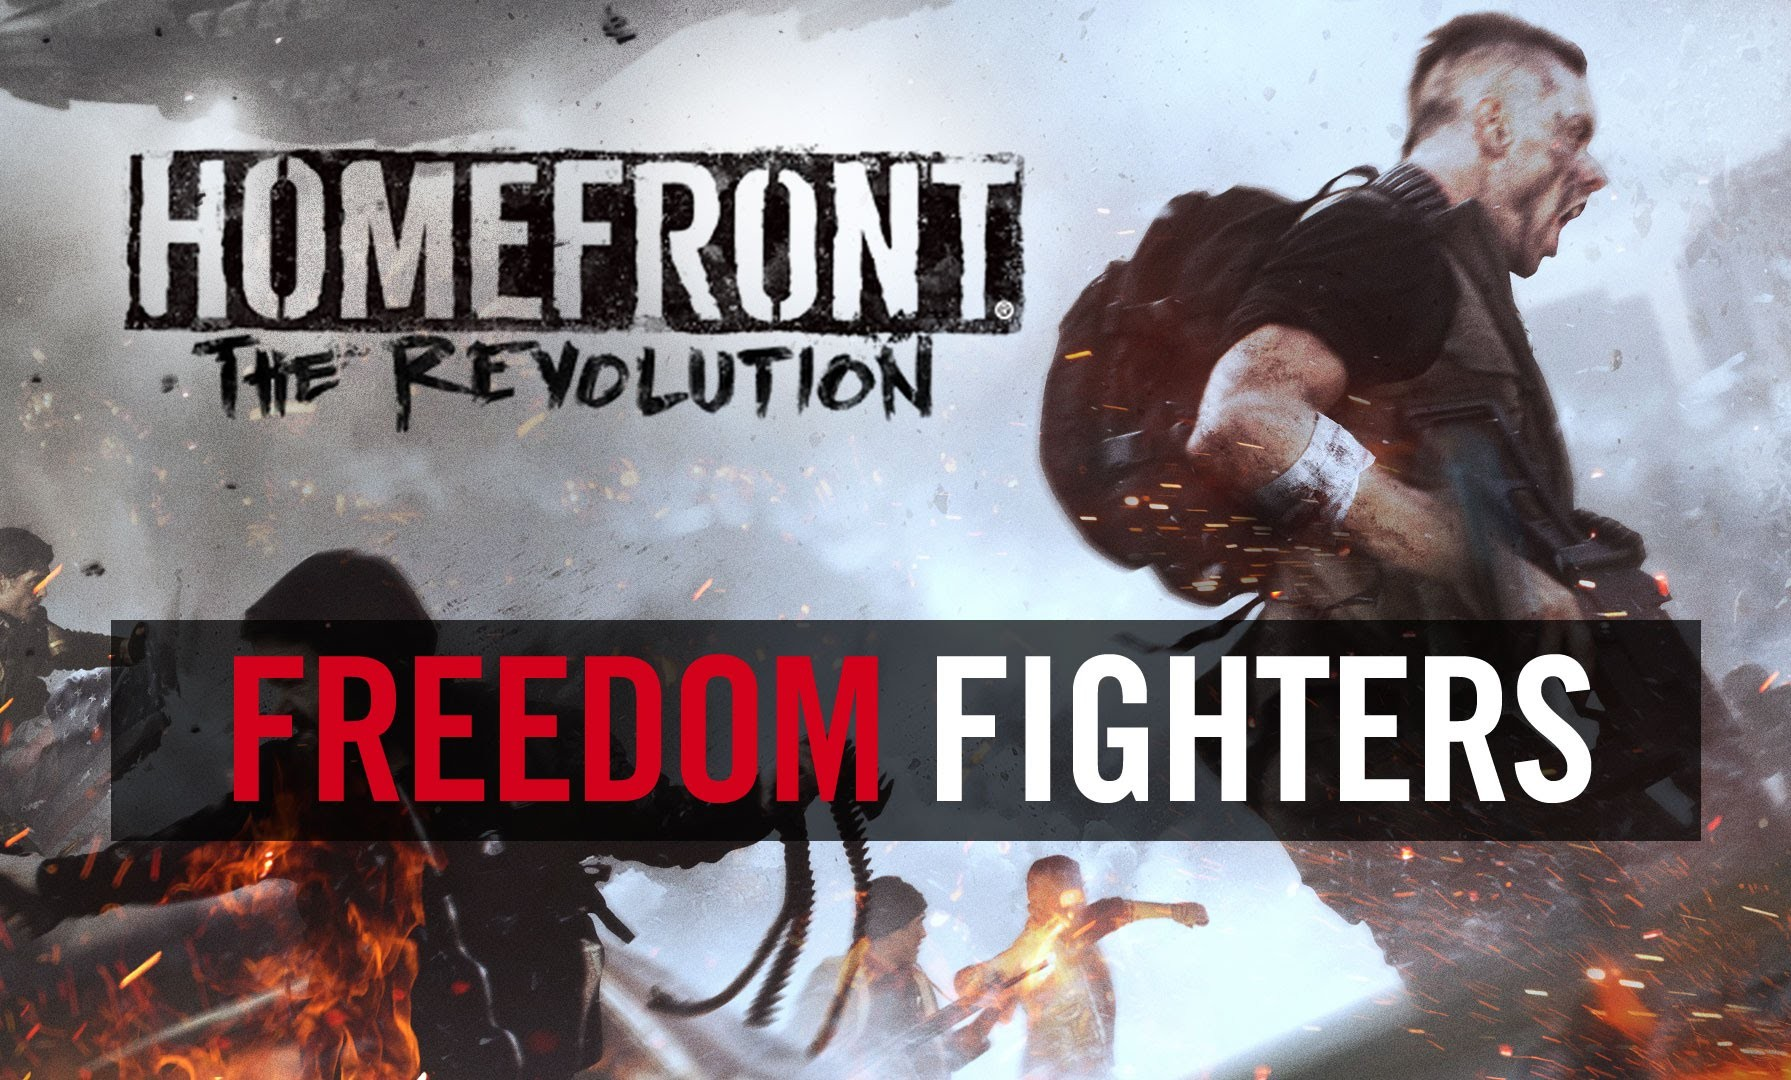 EL COOP DE HOMEFRONT: THE REVOLUTION